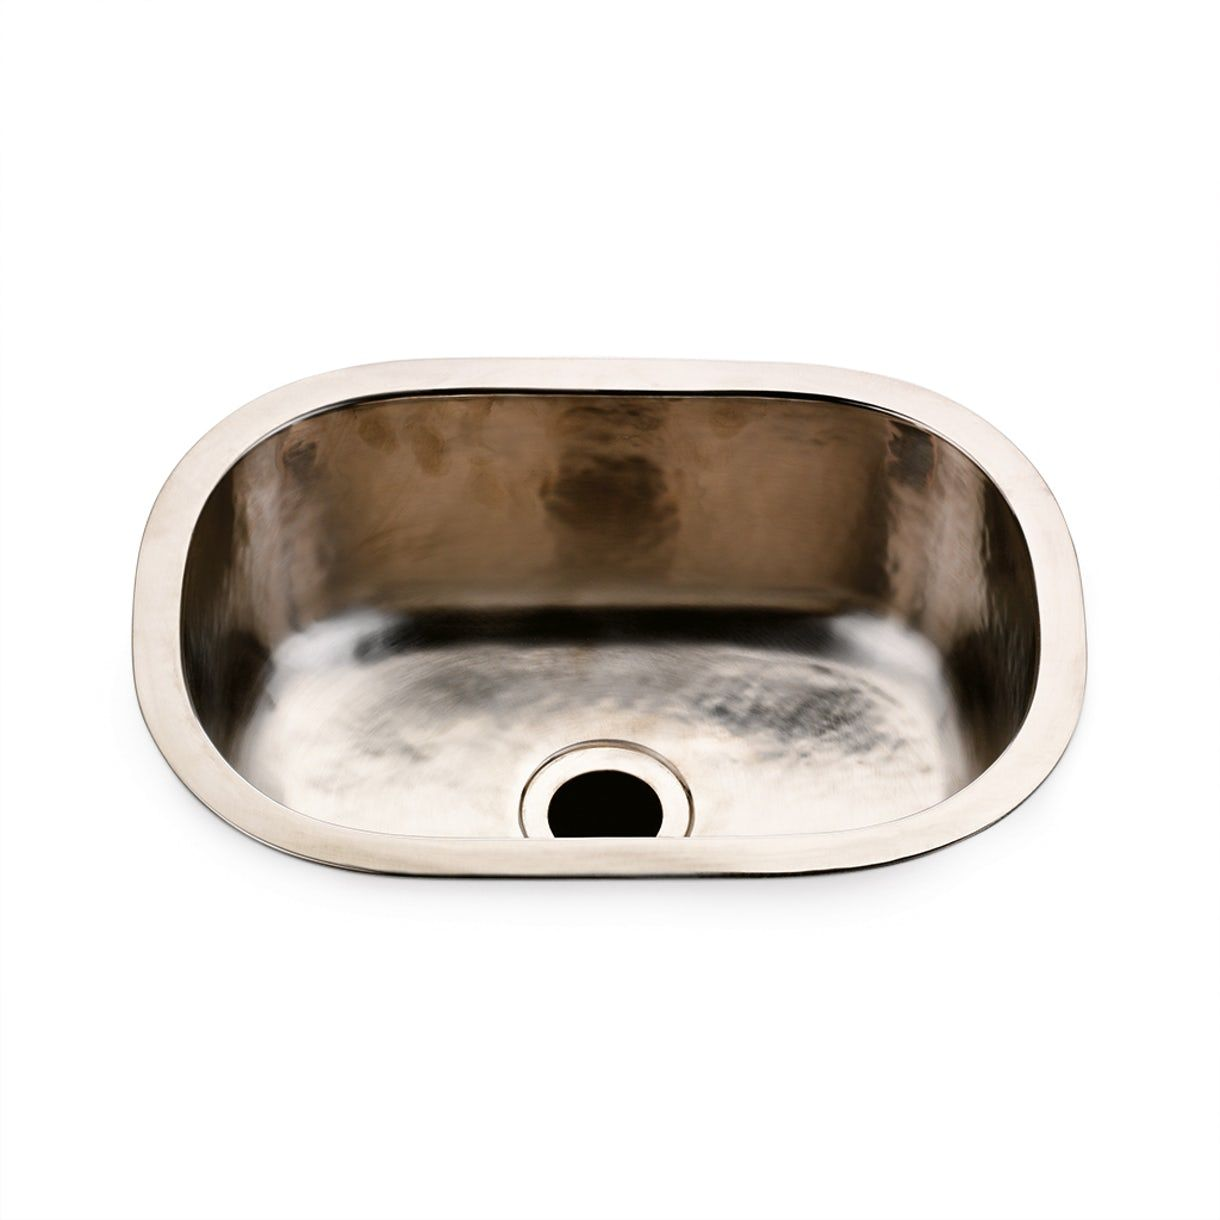 Normandy 15 34 X 11 1316 X 5 716 Hammered Copper Oval Bar Sink With Center Drain In Matte Nickel Contemporary Metal Bath Furniture F Bar Sink Sink Waterworks